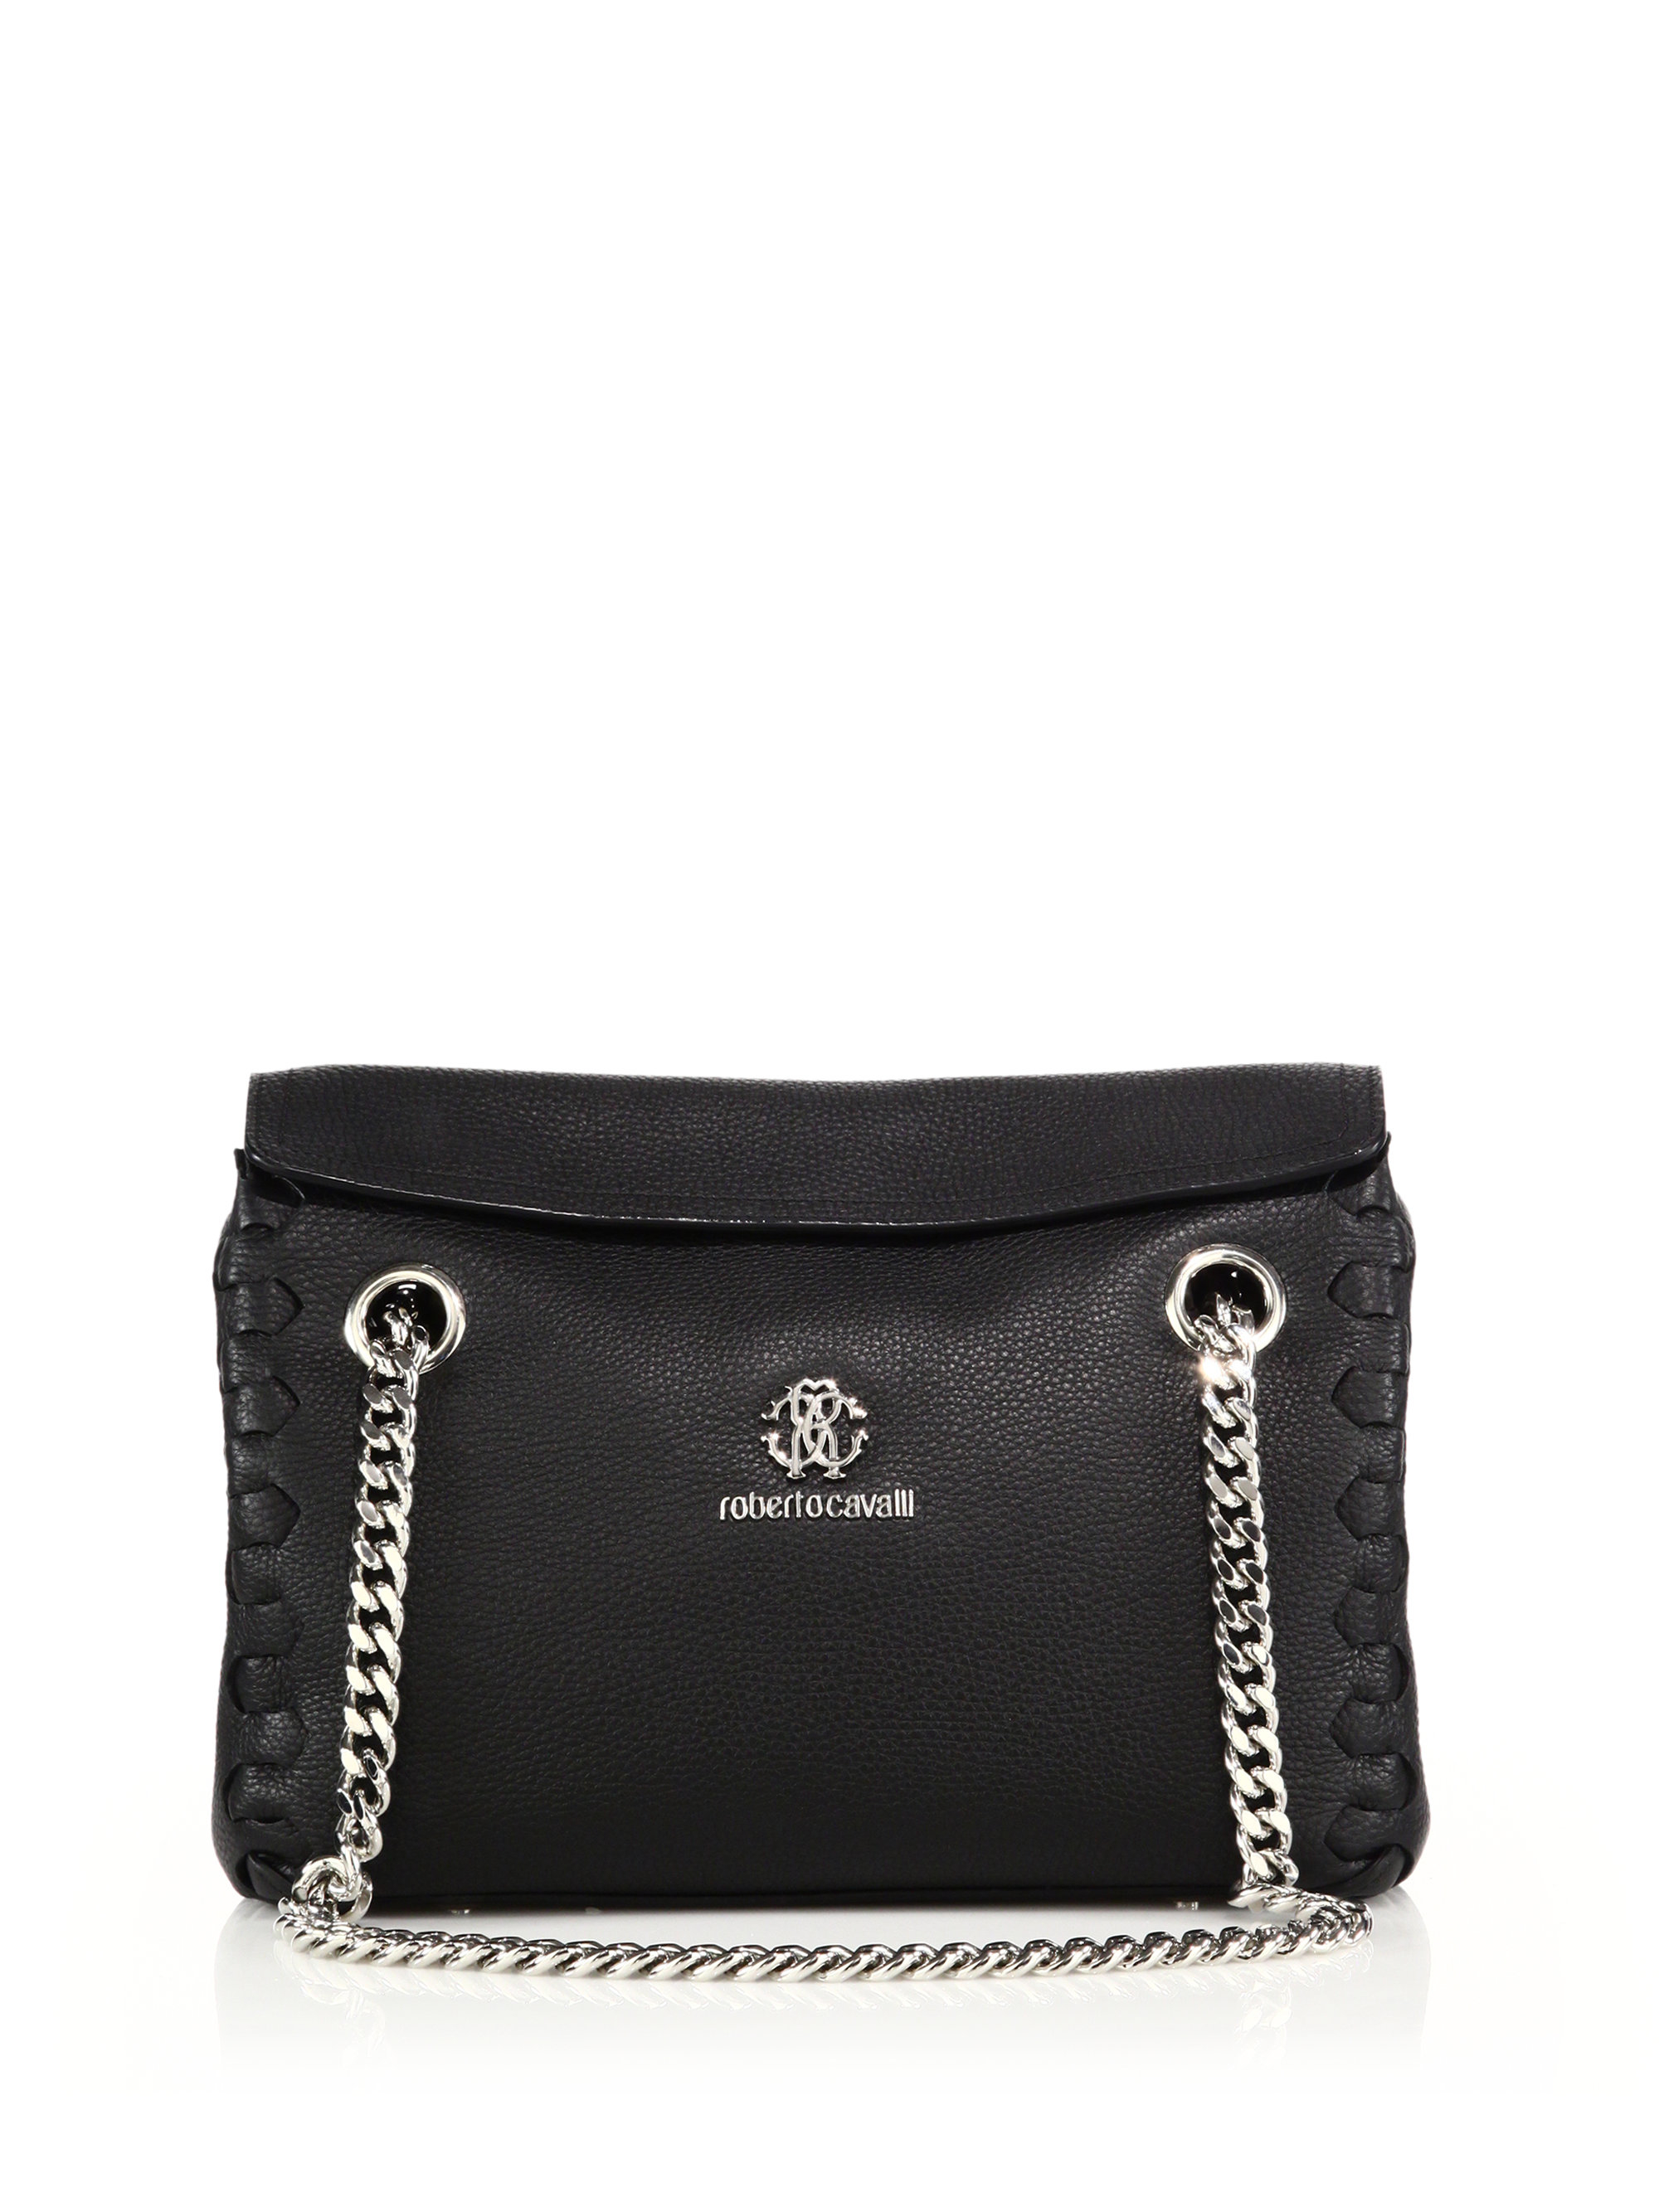 7706ce61605 Lyst Roberto Cavalli Chain Handle Leather Shoulder Bag In Black